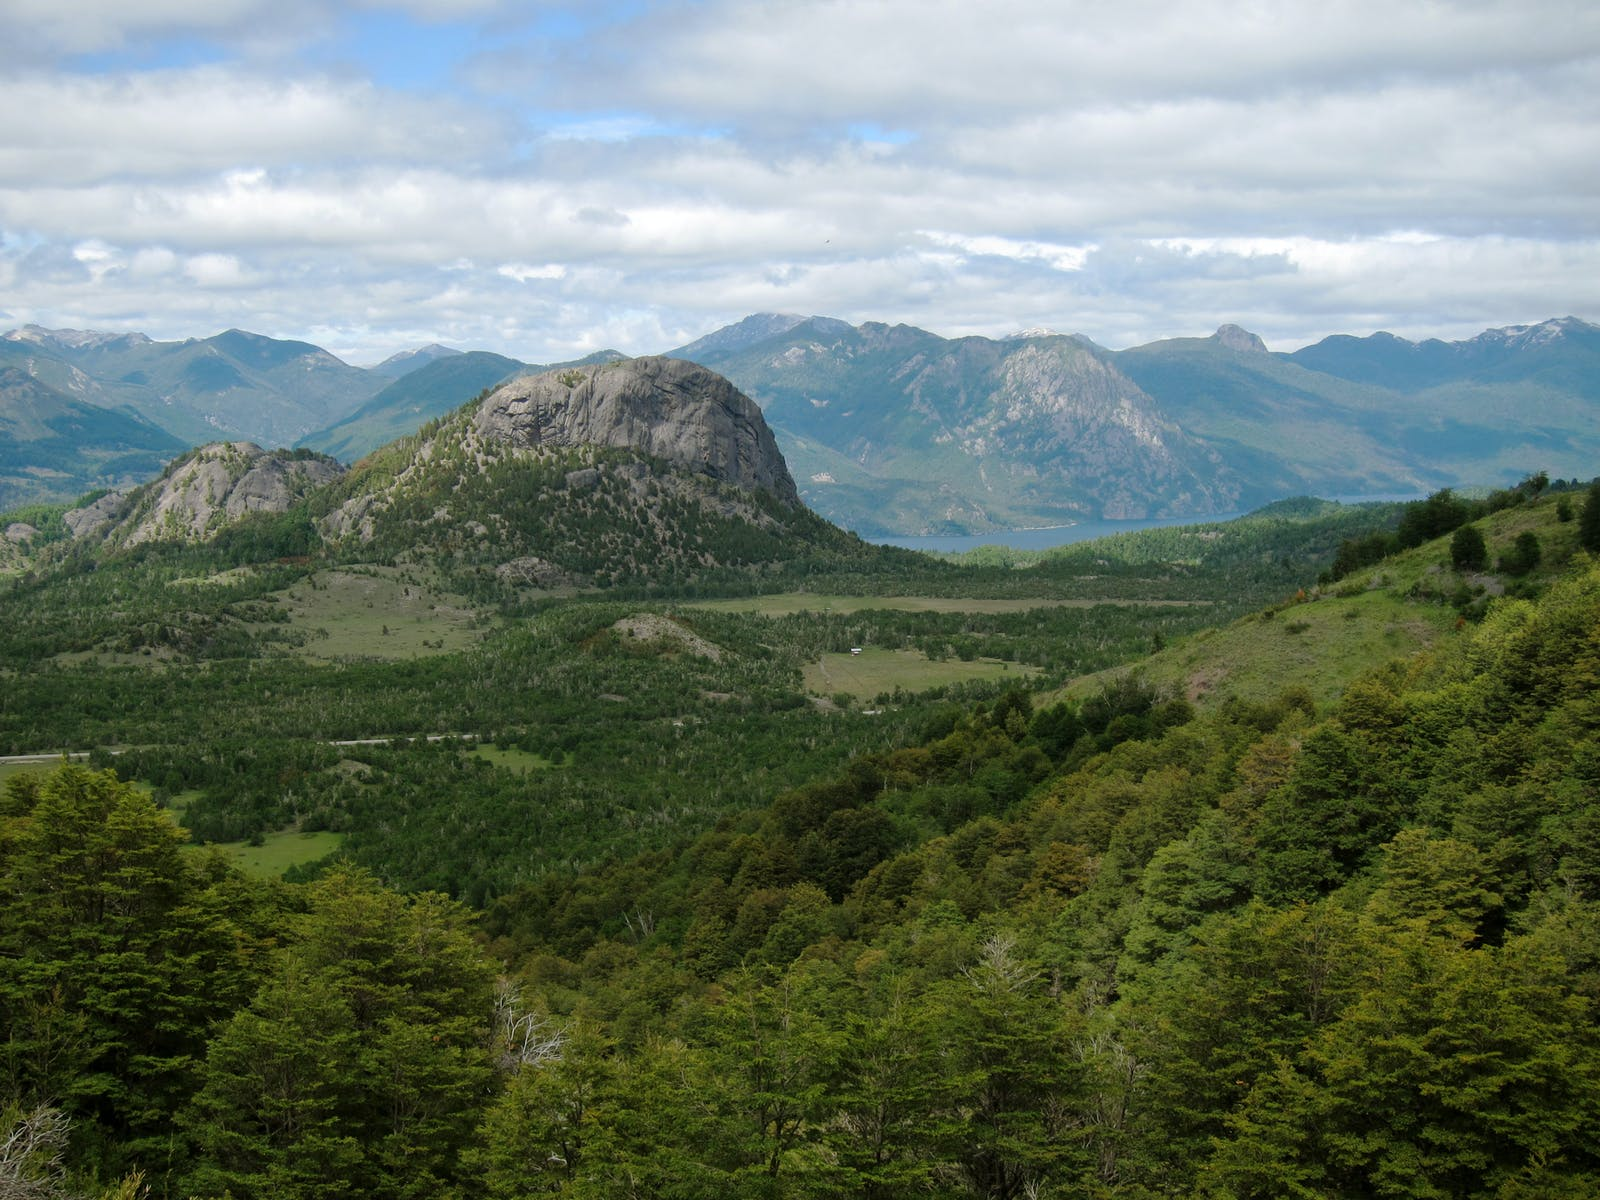 Valdivian Temperate Forests